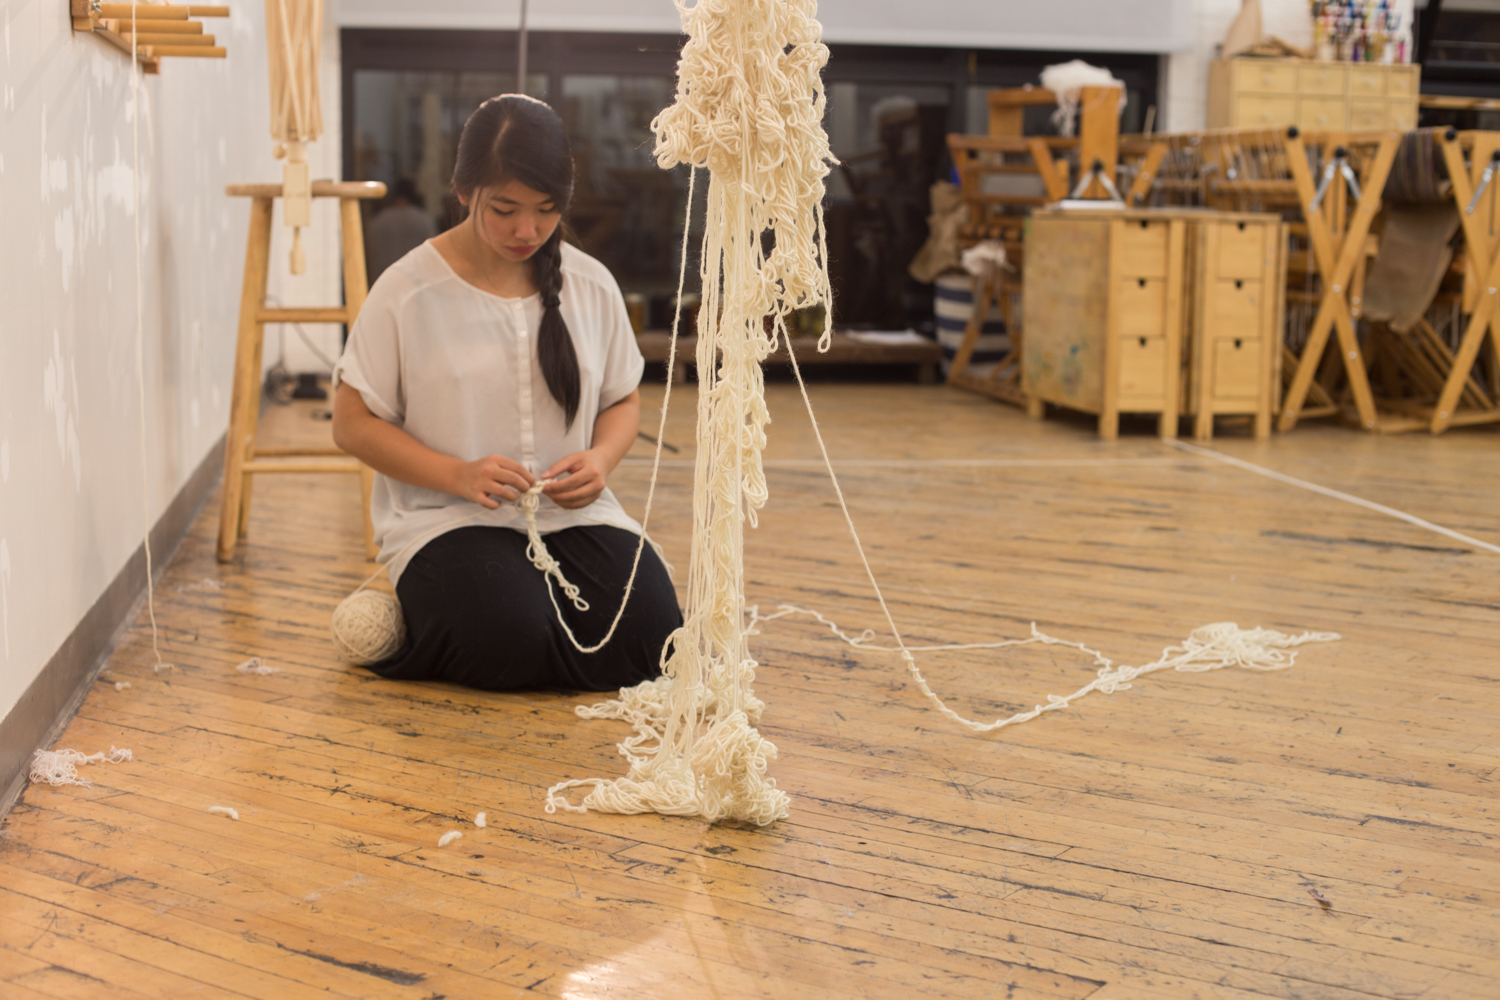 The artist focuses on untying a knot as she kneels on the floor with the ball of untangled yarn (still at 3.5 inches in diameter) next to her foot.